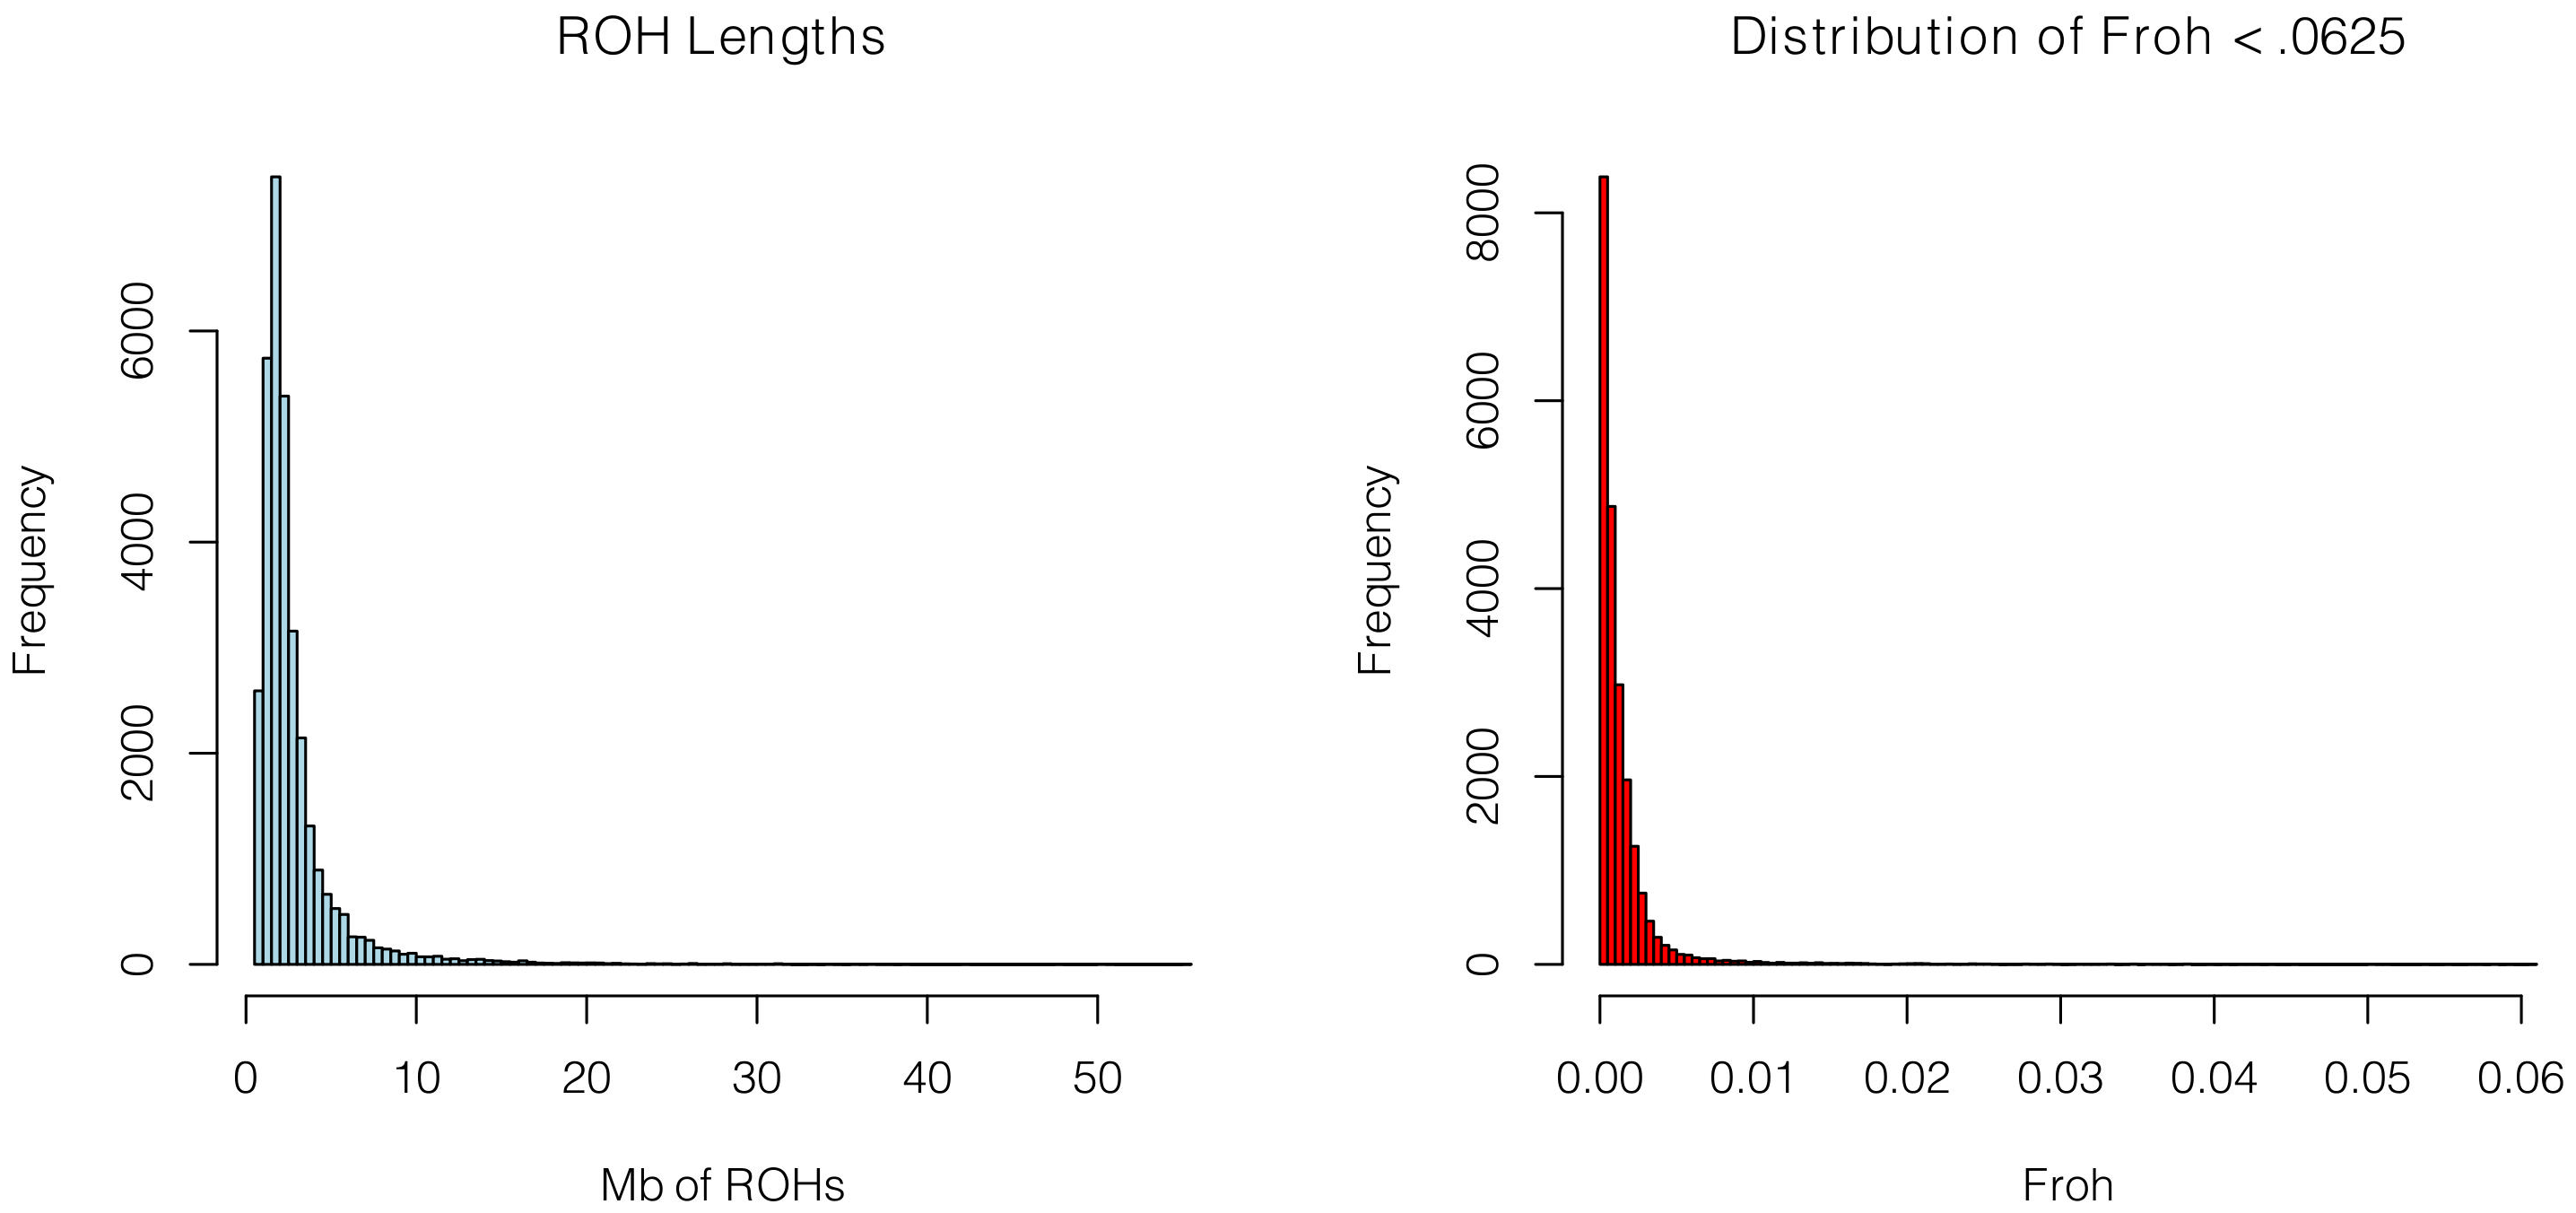 Distributions of ROH Lengths (left) and <i>Froh</i> (right) in the total sample.